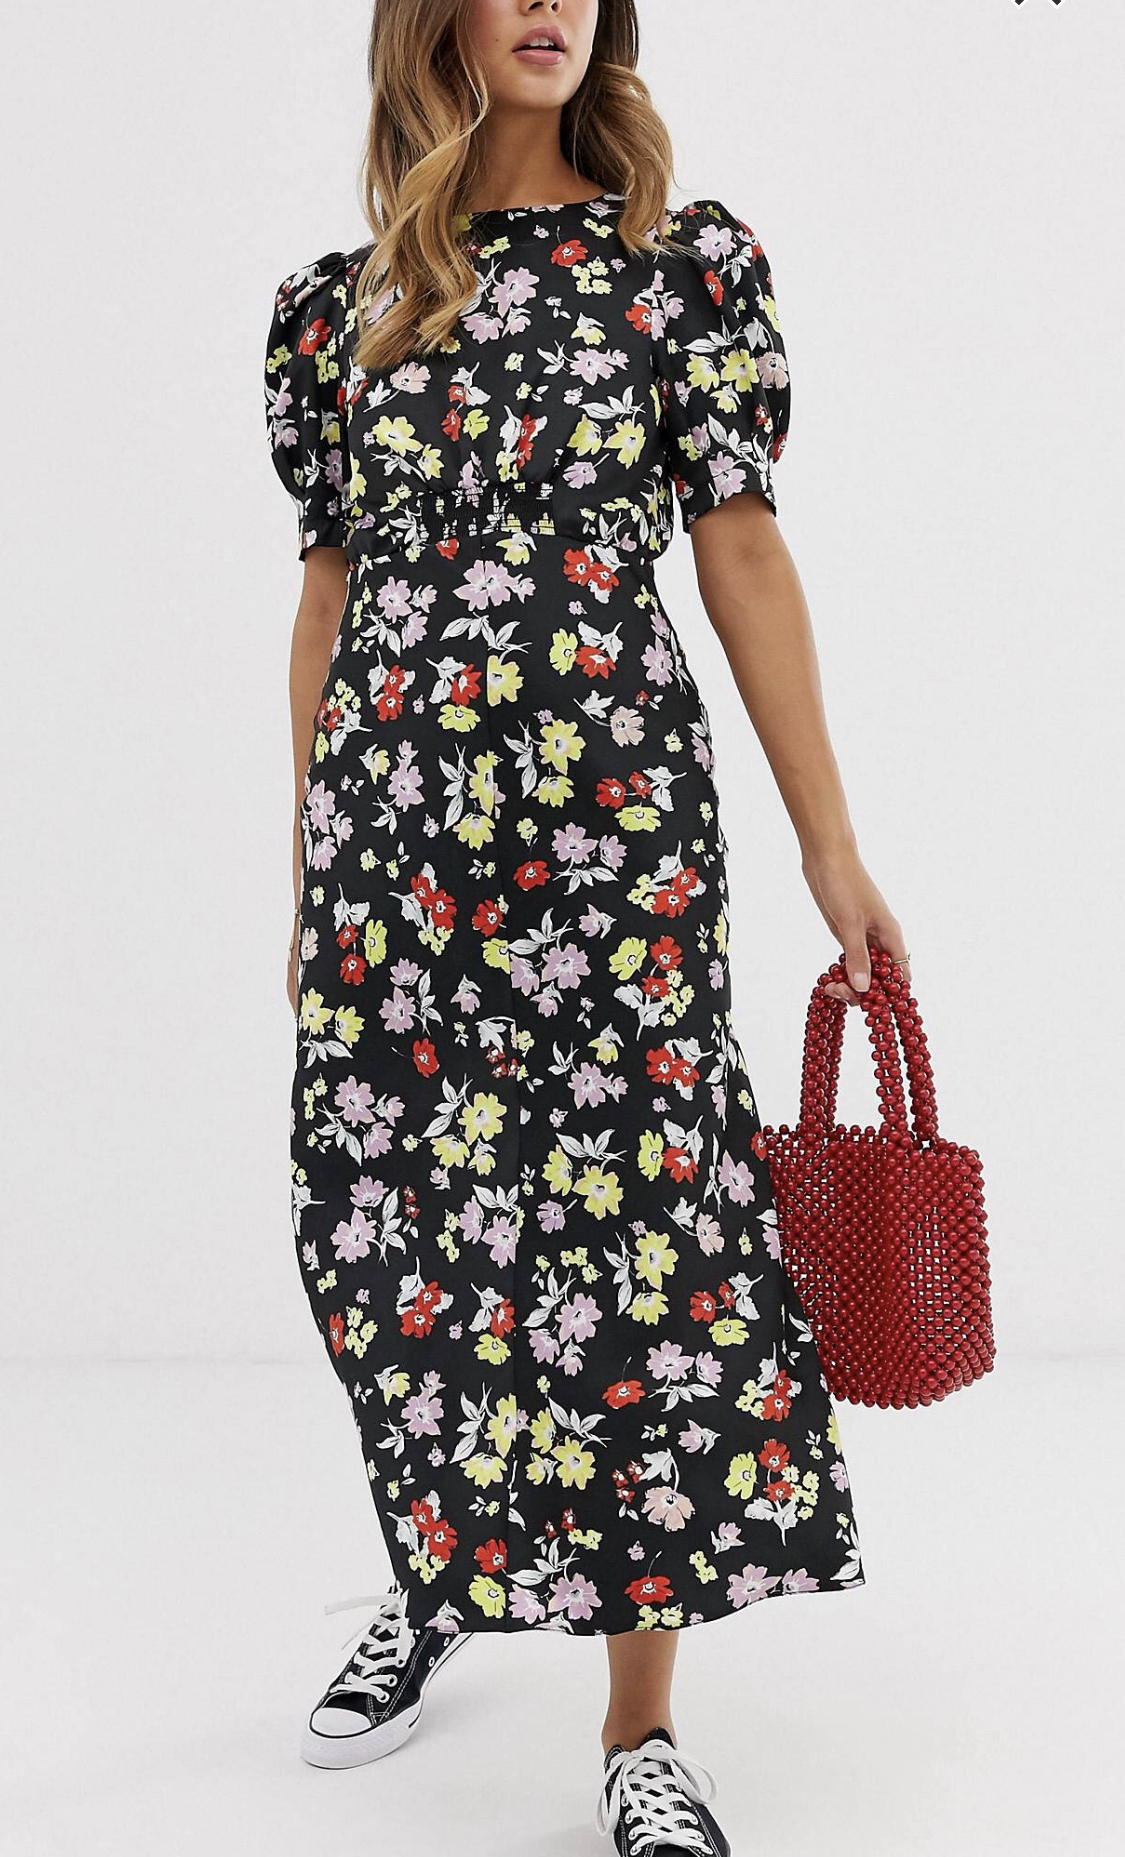 ASOS  black floral tea dress, $60